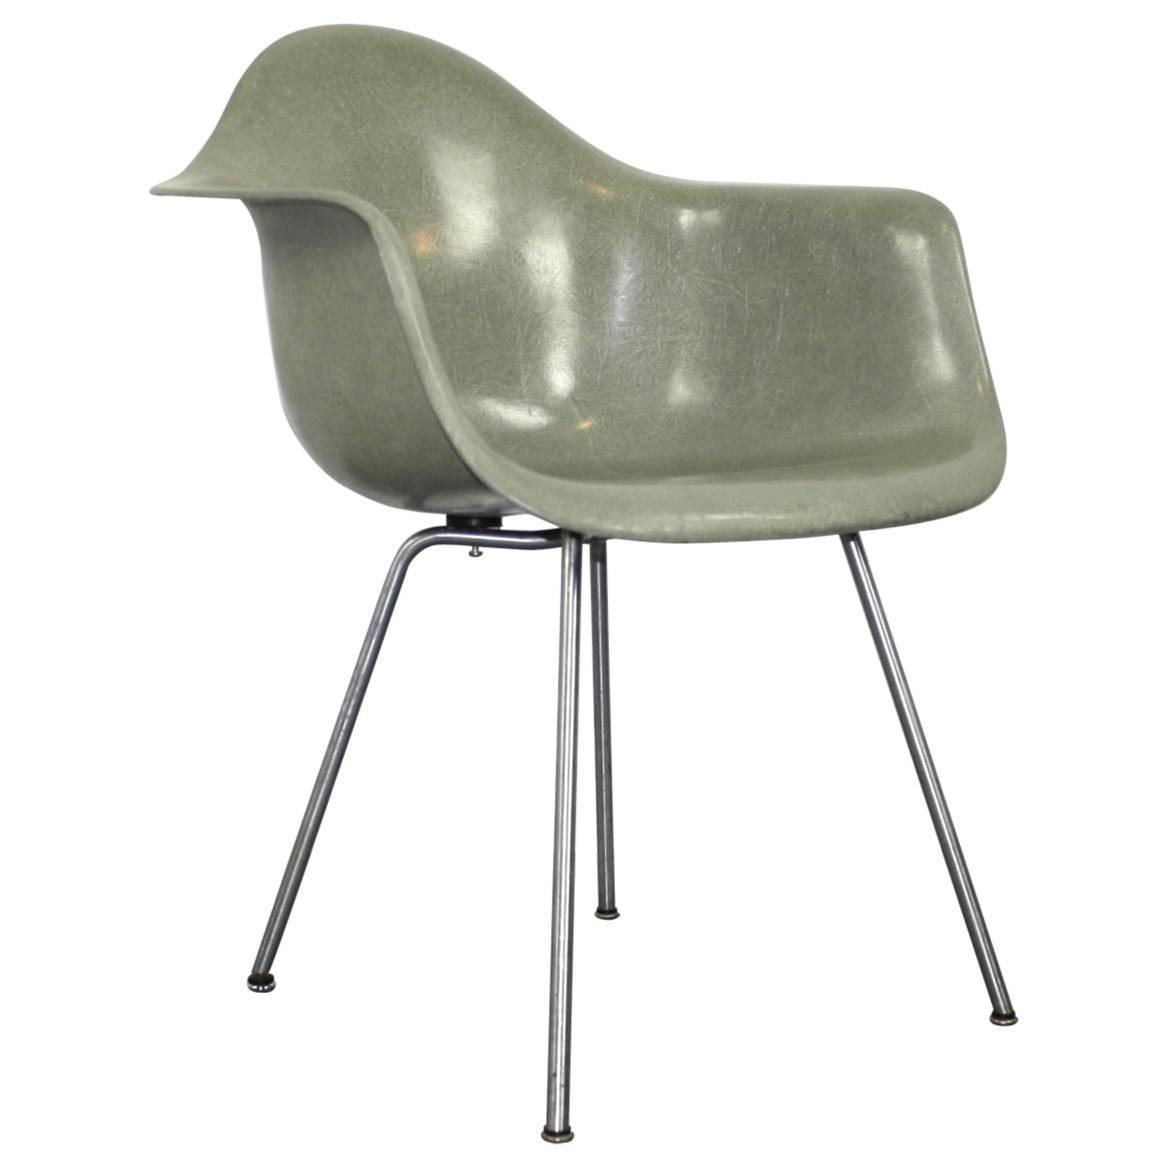 All Original Eames For Herman Miller Lax Chair In Seafoam Green For Sale At  1stdibs